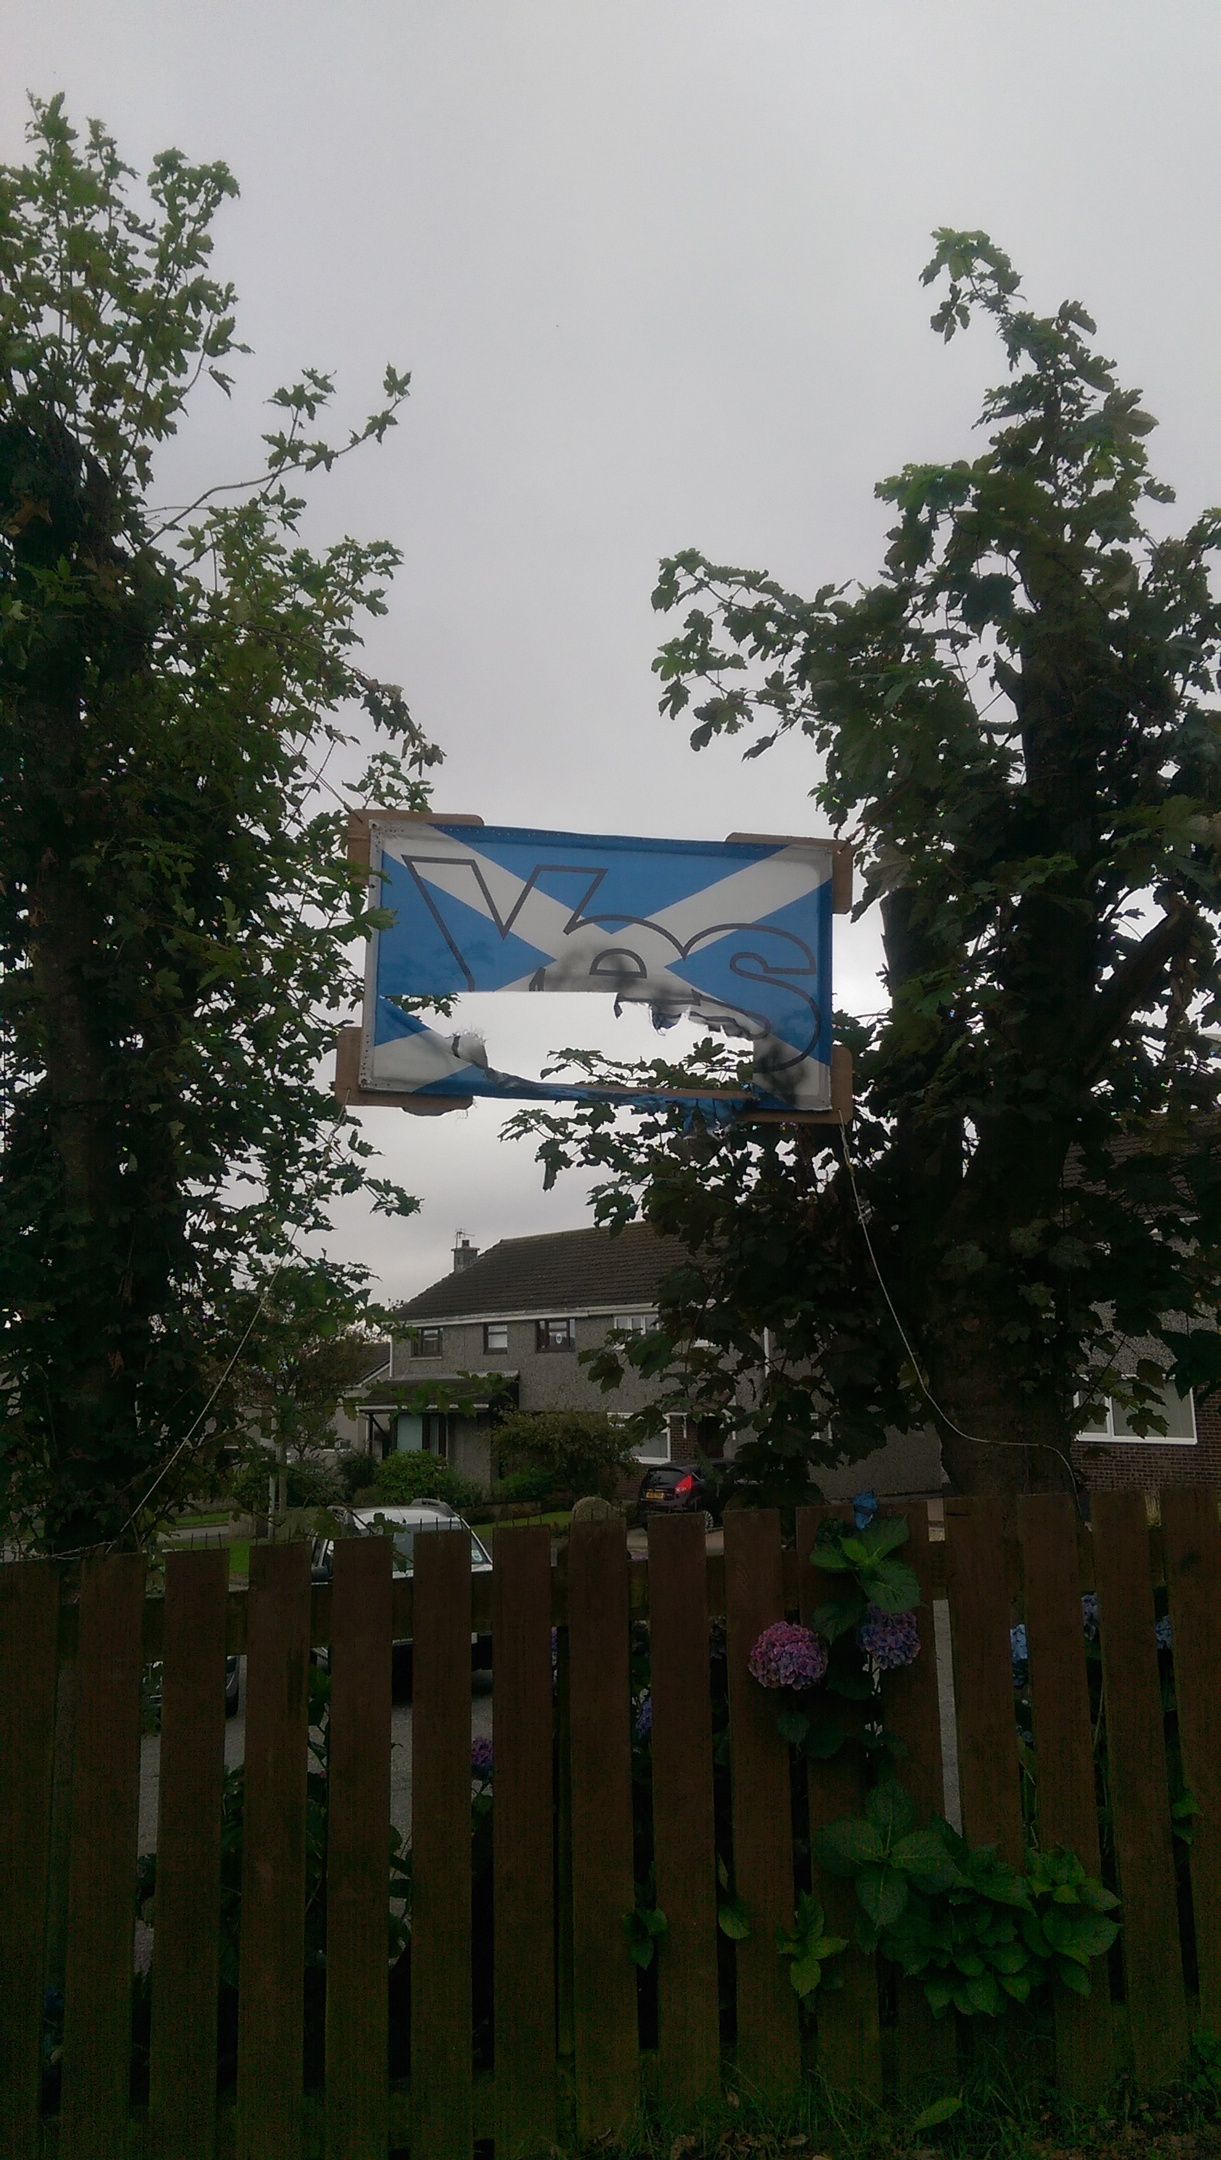 A Yes flag was torched by vandals